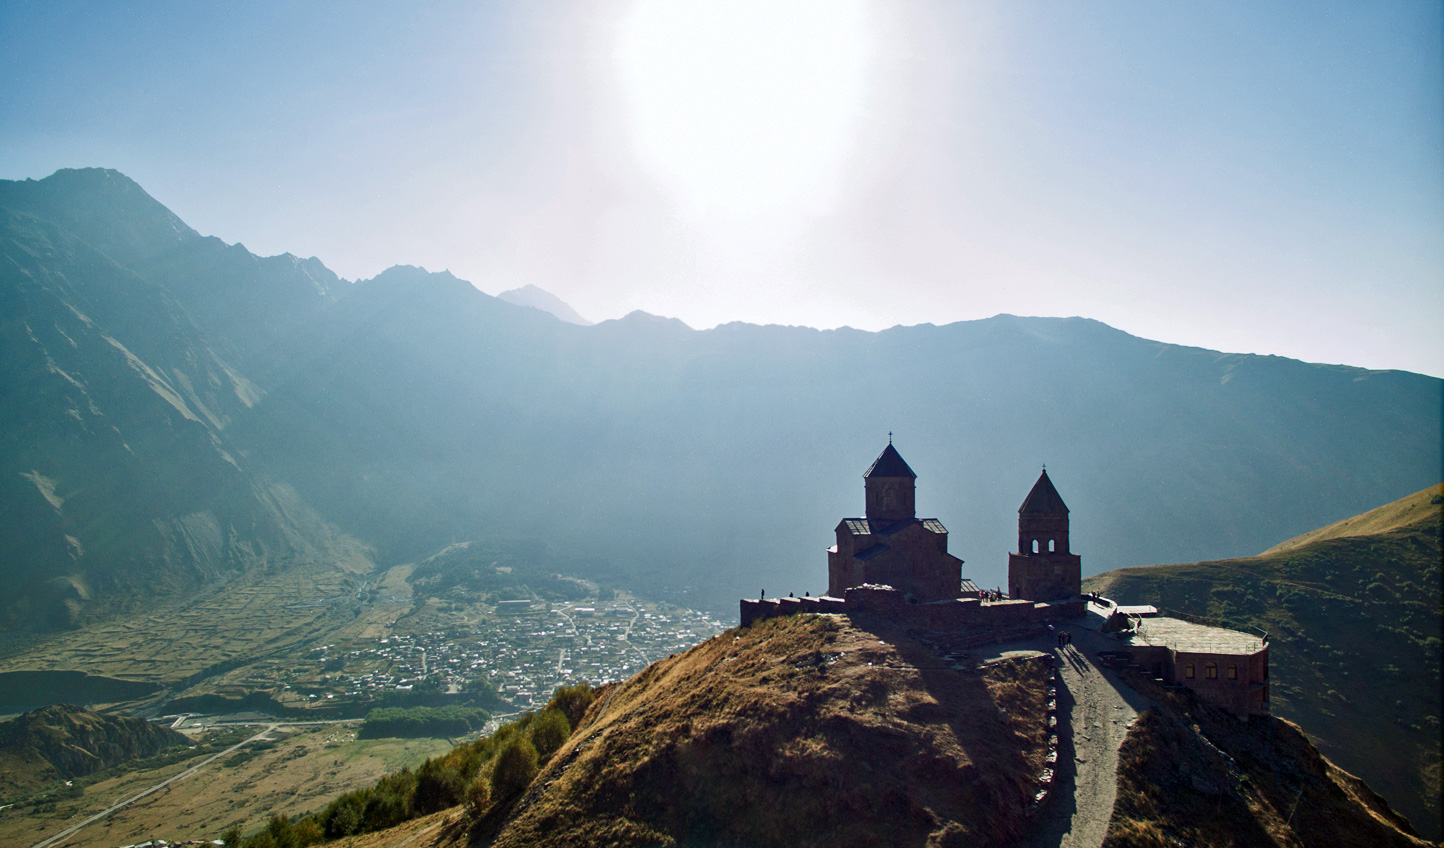 Make your way up  to Gergeti Trinity Church for awe-inspiring views over the valley